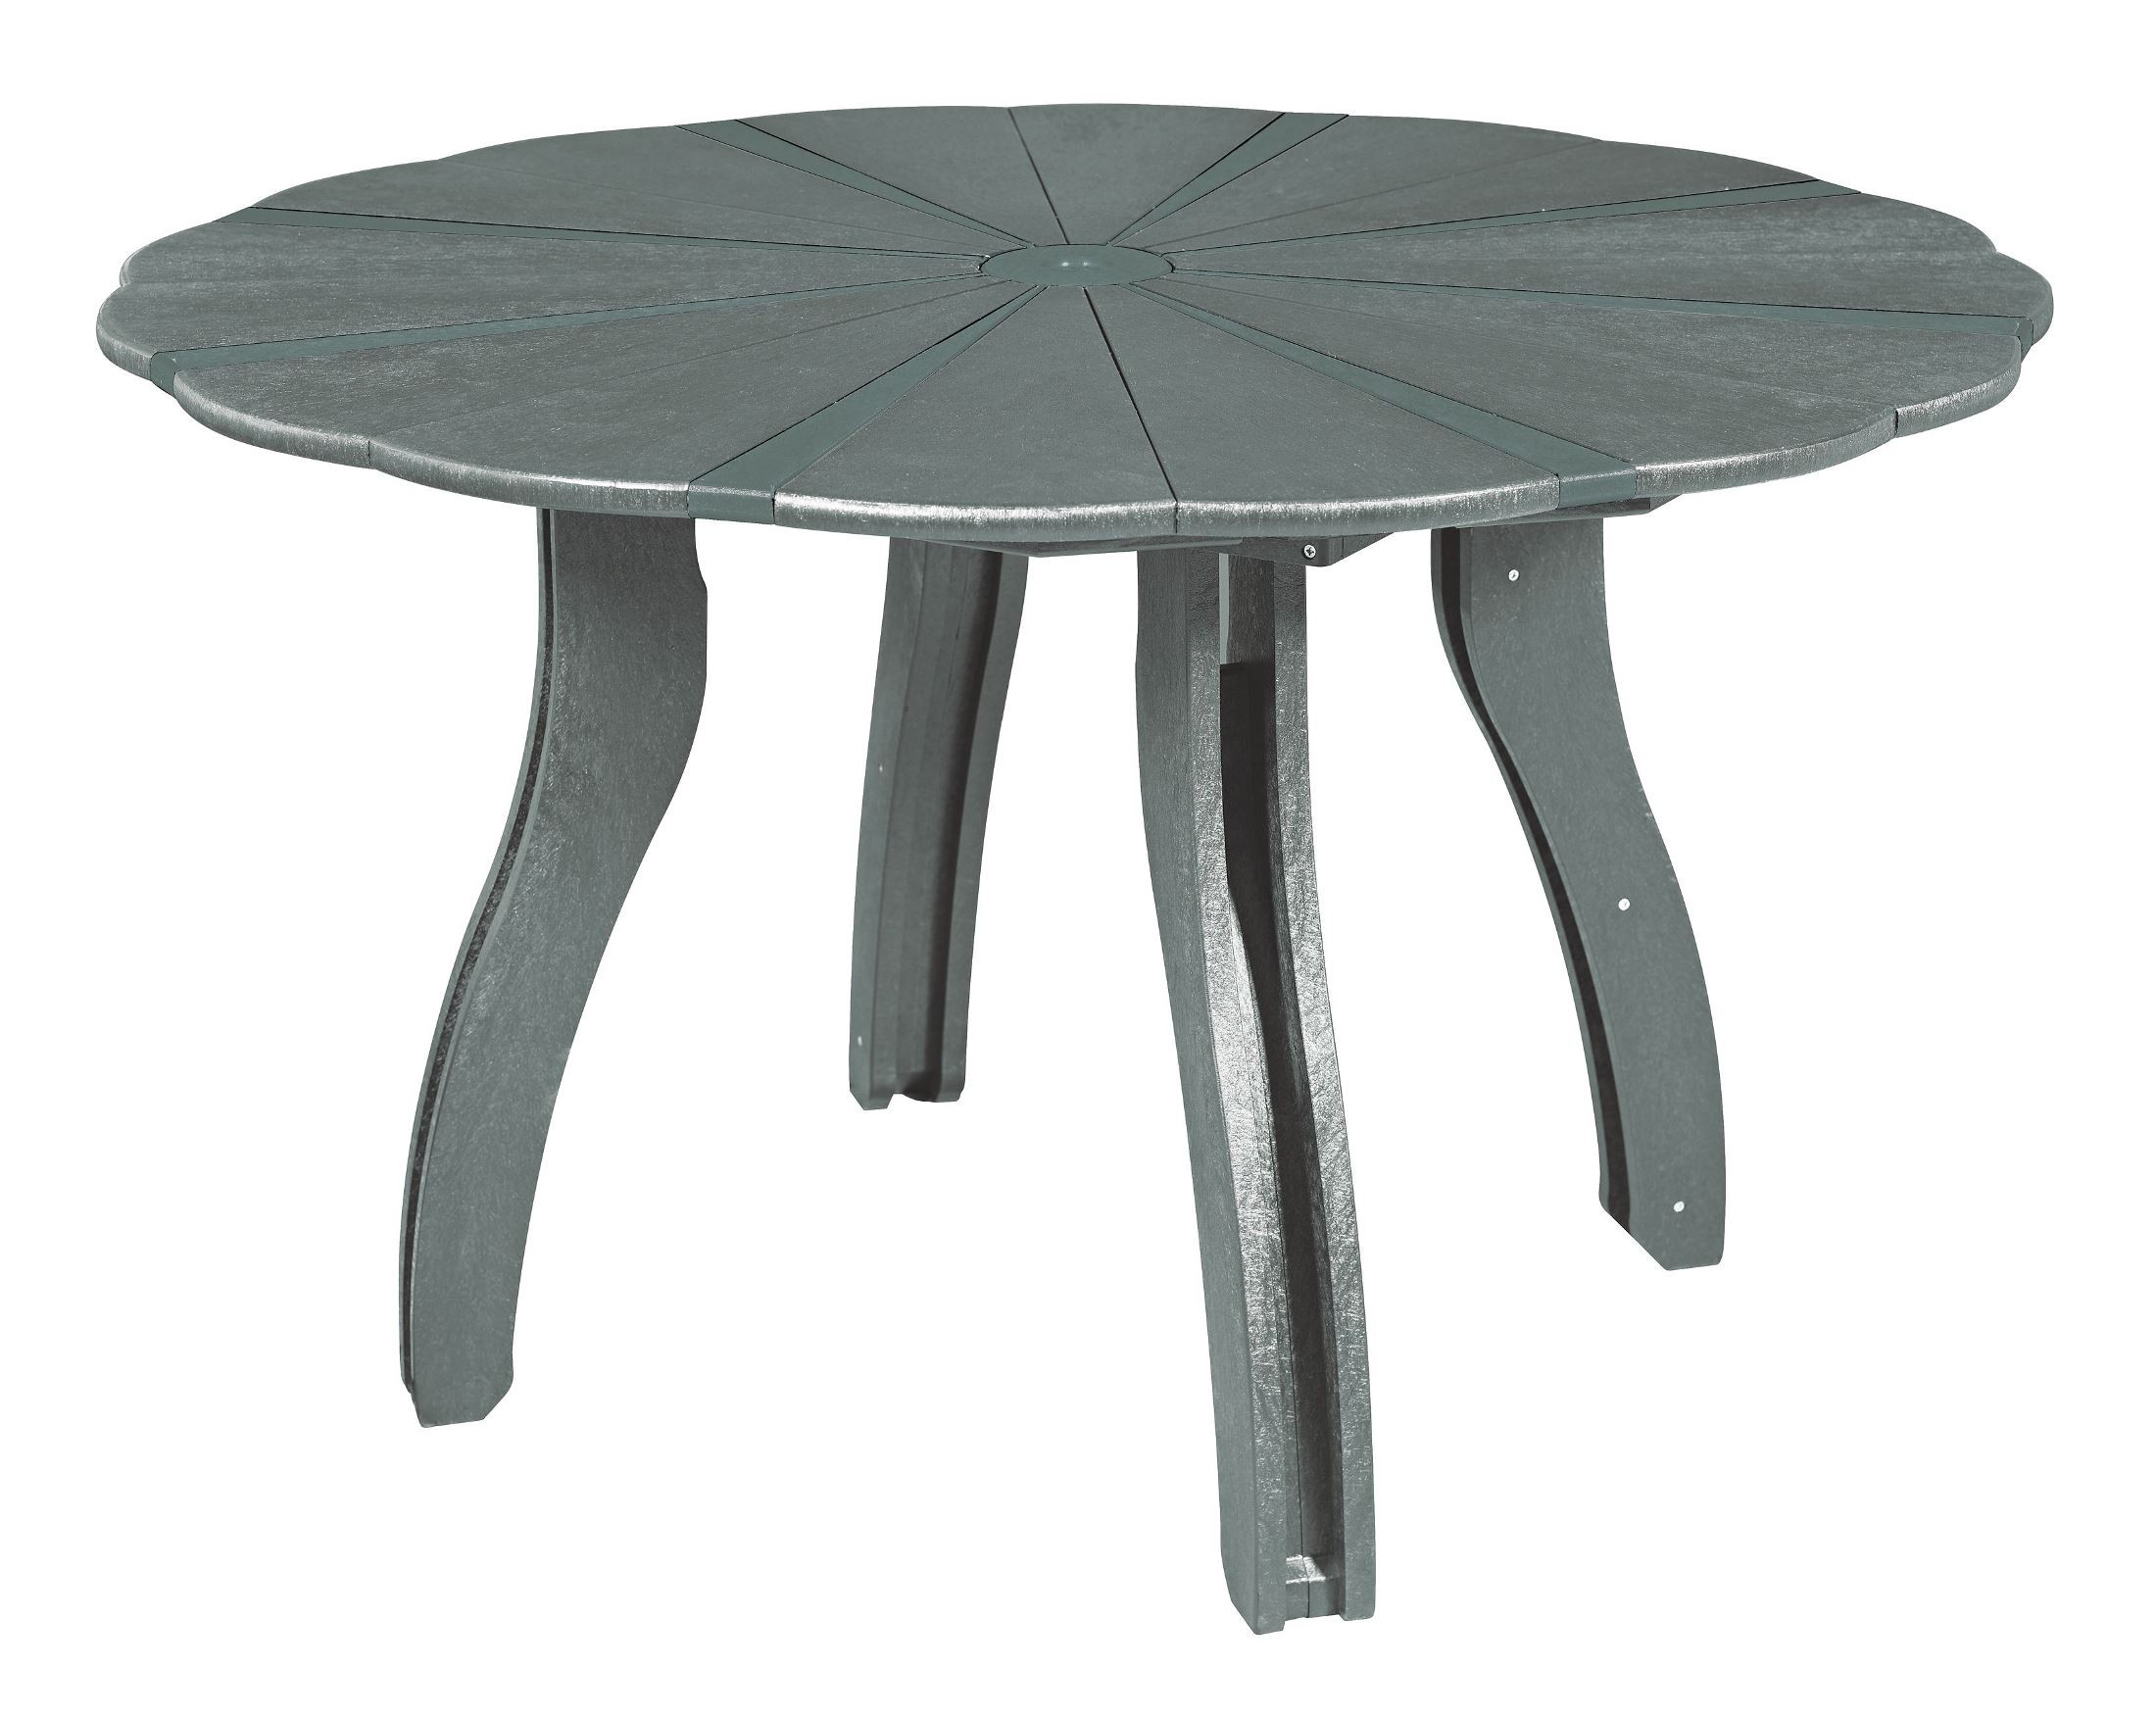 Generations slate 52 scalloped round dining table from cr for Round table 52 nordenham